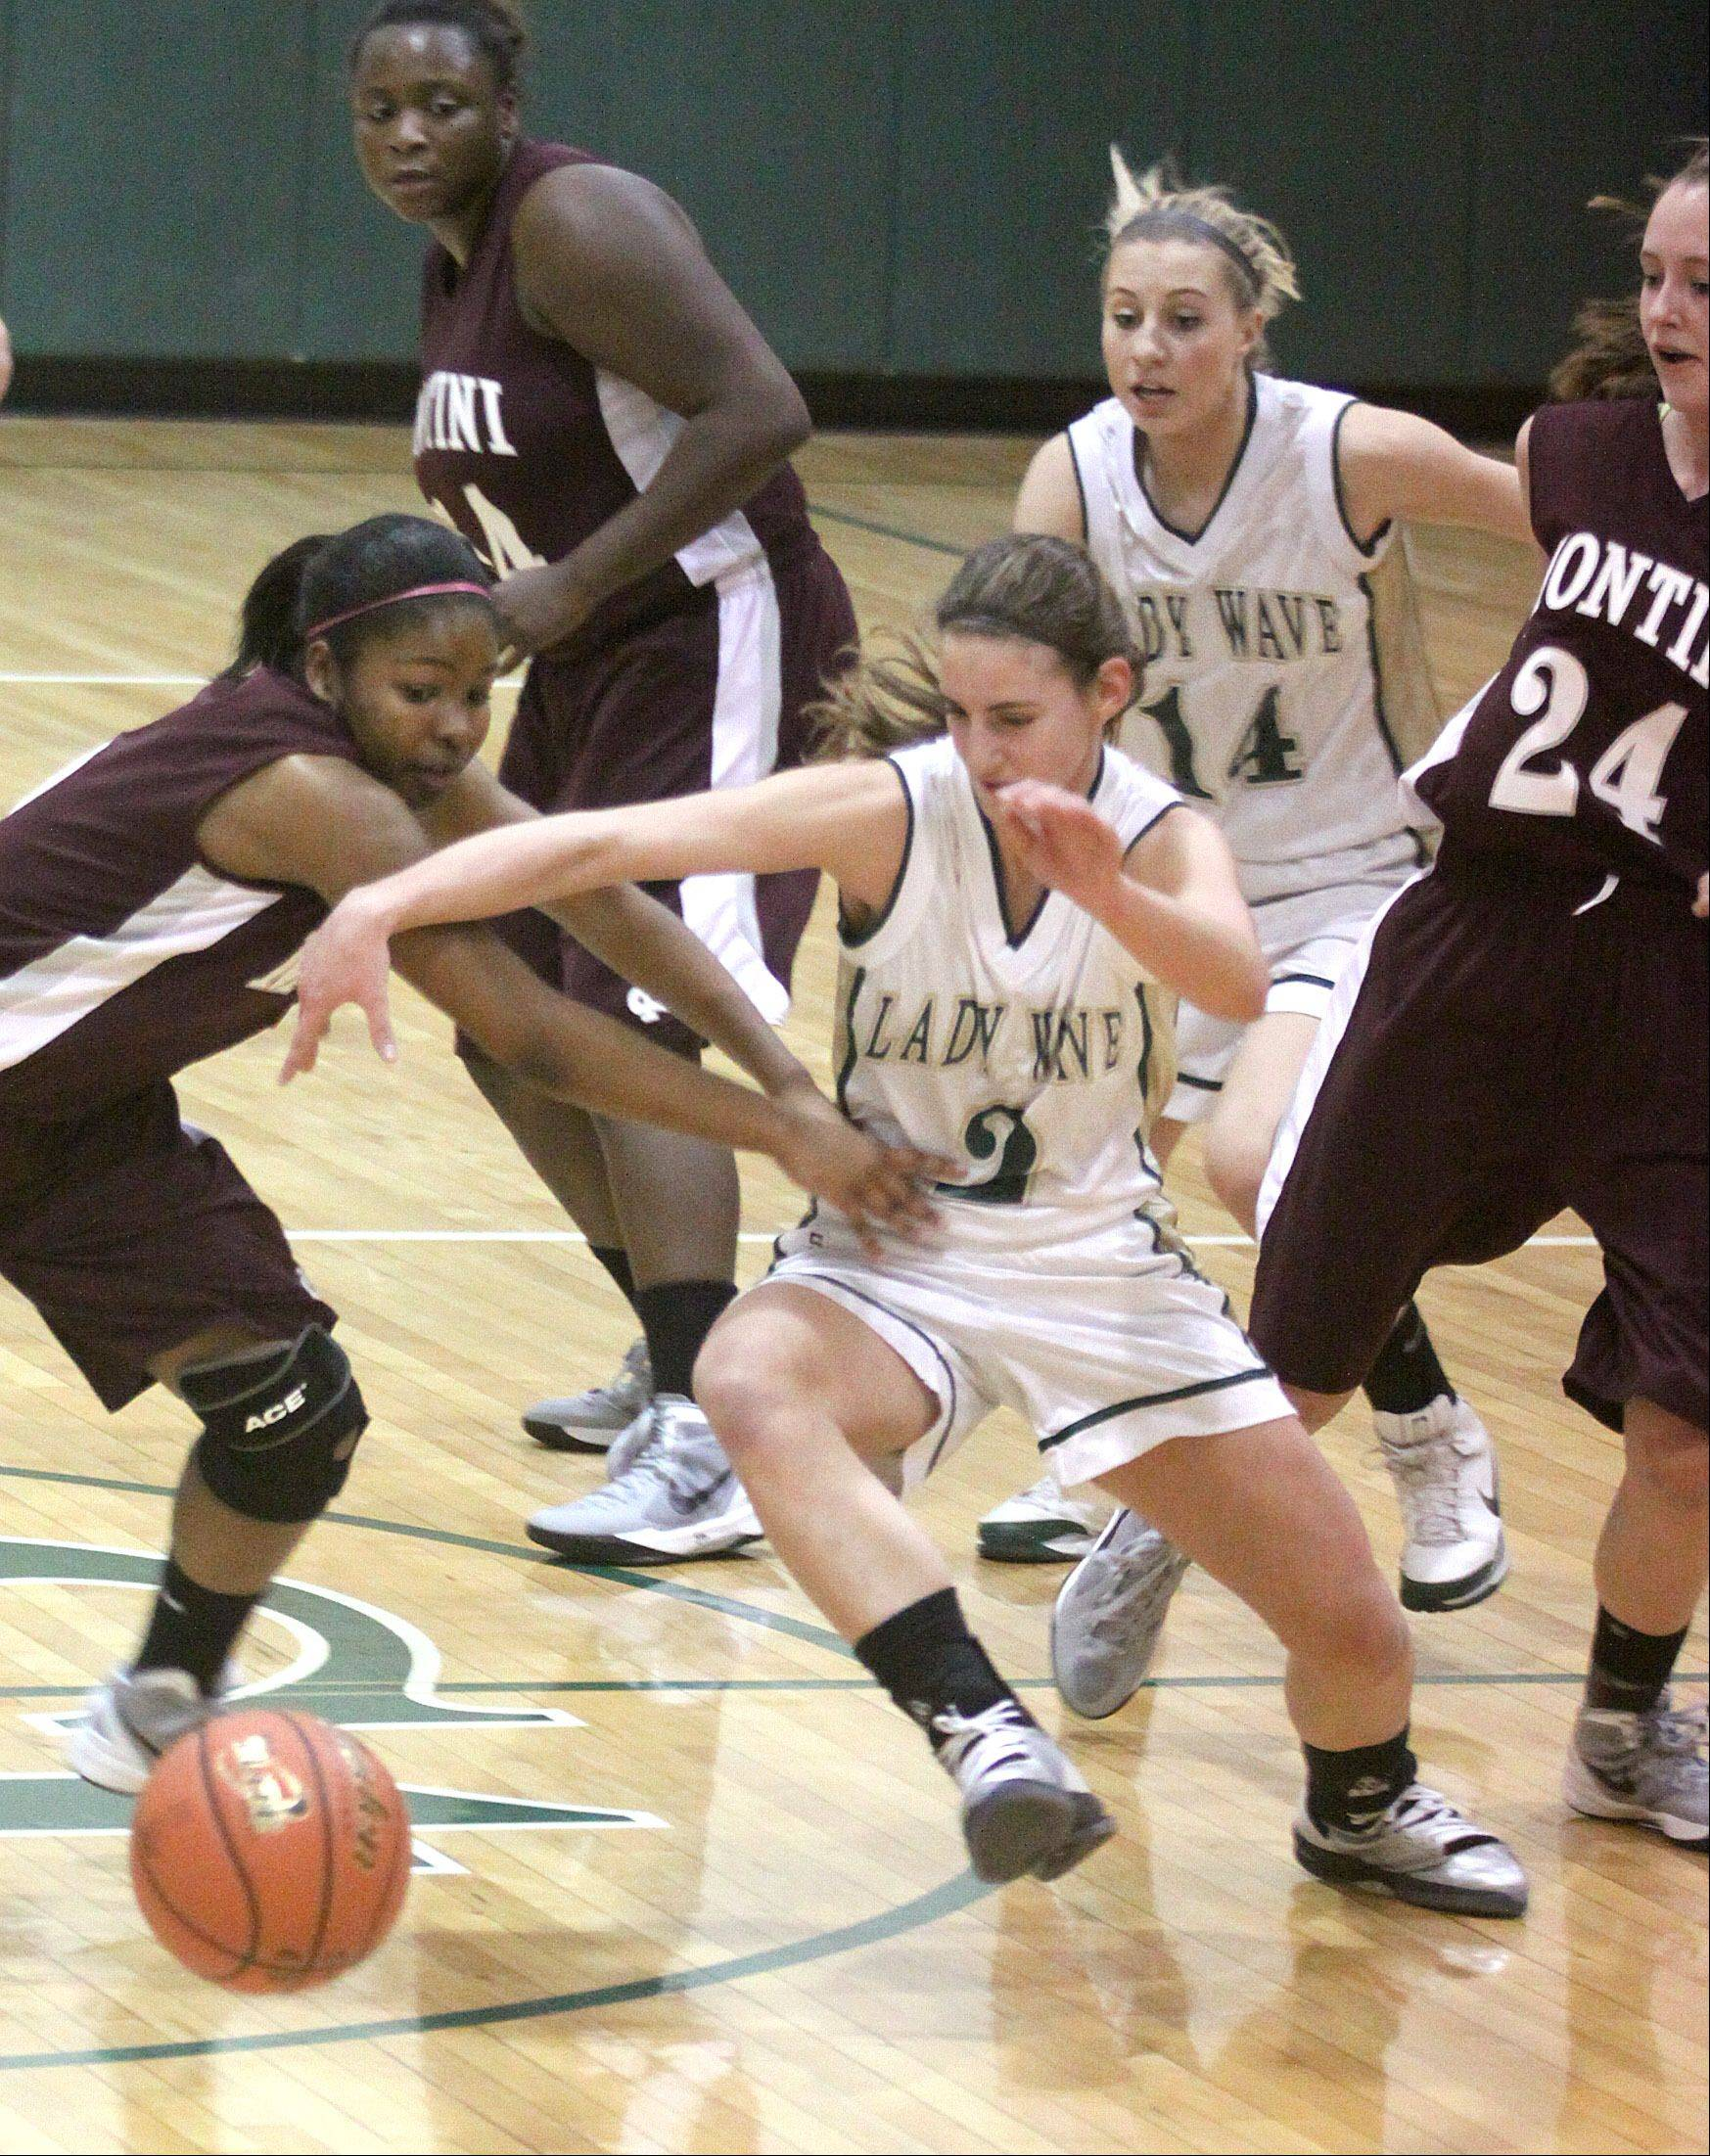 St. Edward's Rena Ranallo, right, and Montini's Nikia Edom, left, chase a loose ball during Tusday's girls basketball game in Elgin